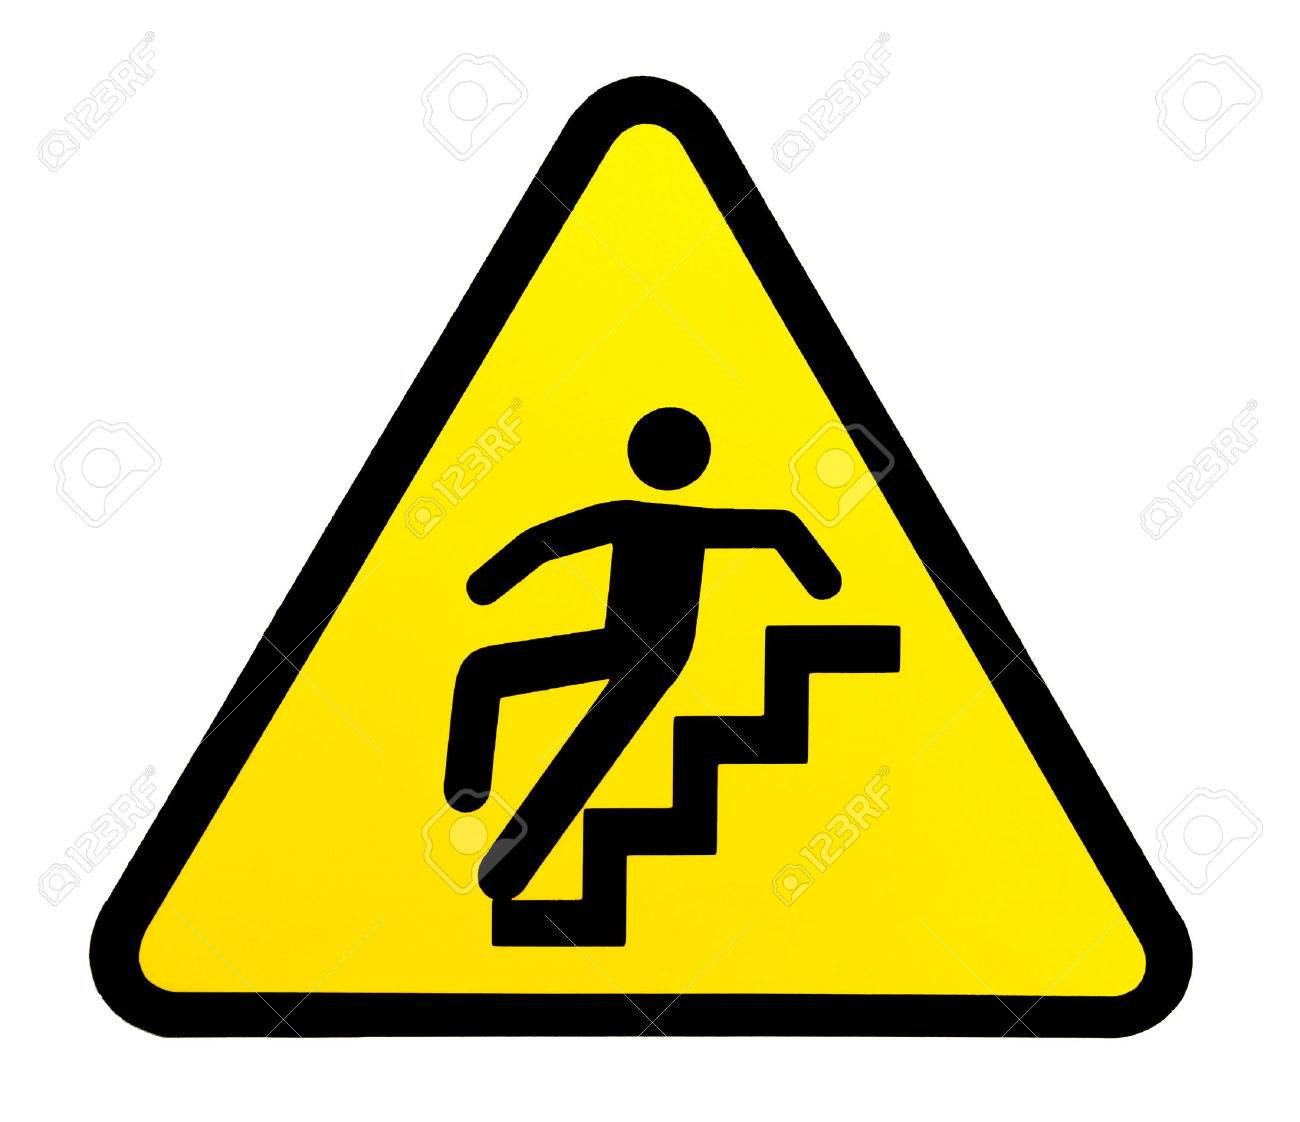 Stock Photo   Yellow Triangular Sign Warning For Slippery Stairs When Wet